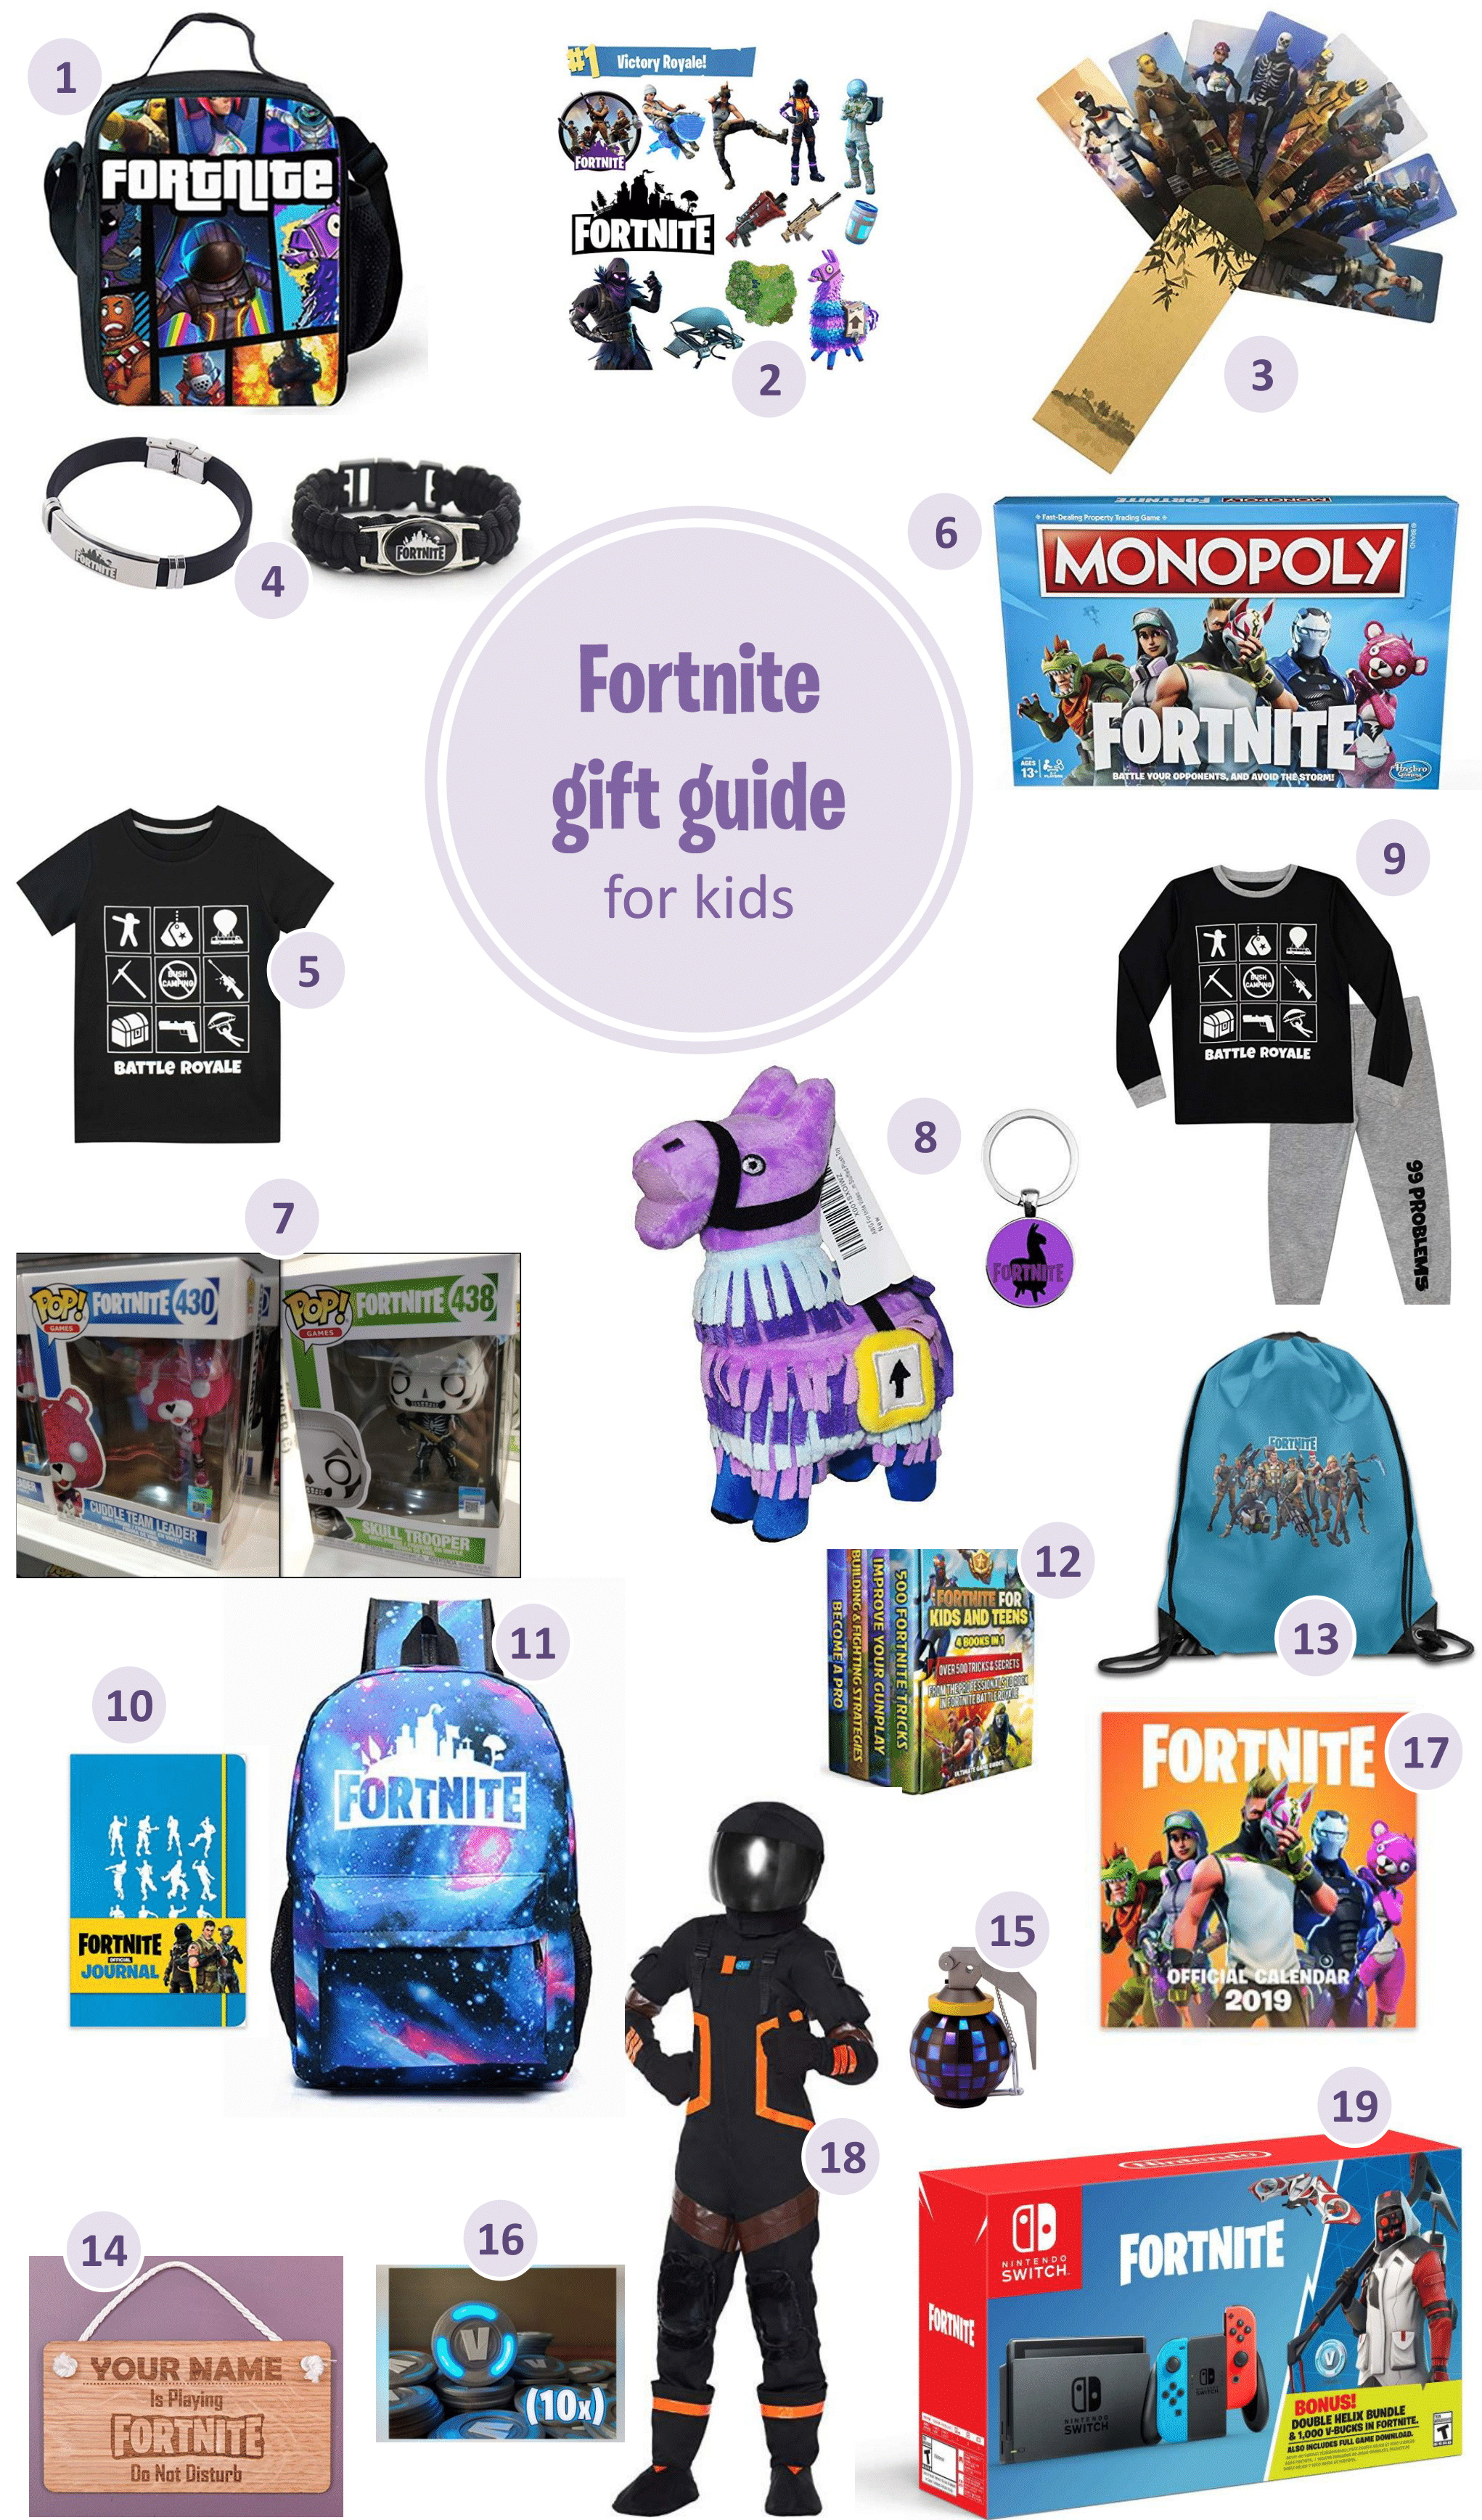 Fornite gifts for kids a gift guide for the Fornite fan - Epic Fortnite gifts for kids - 25 gift ideas for Fortnite lovers